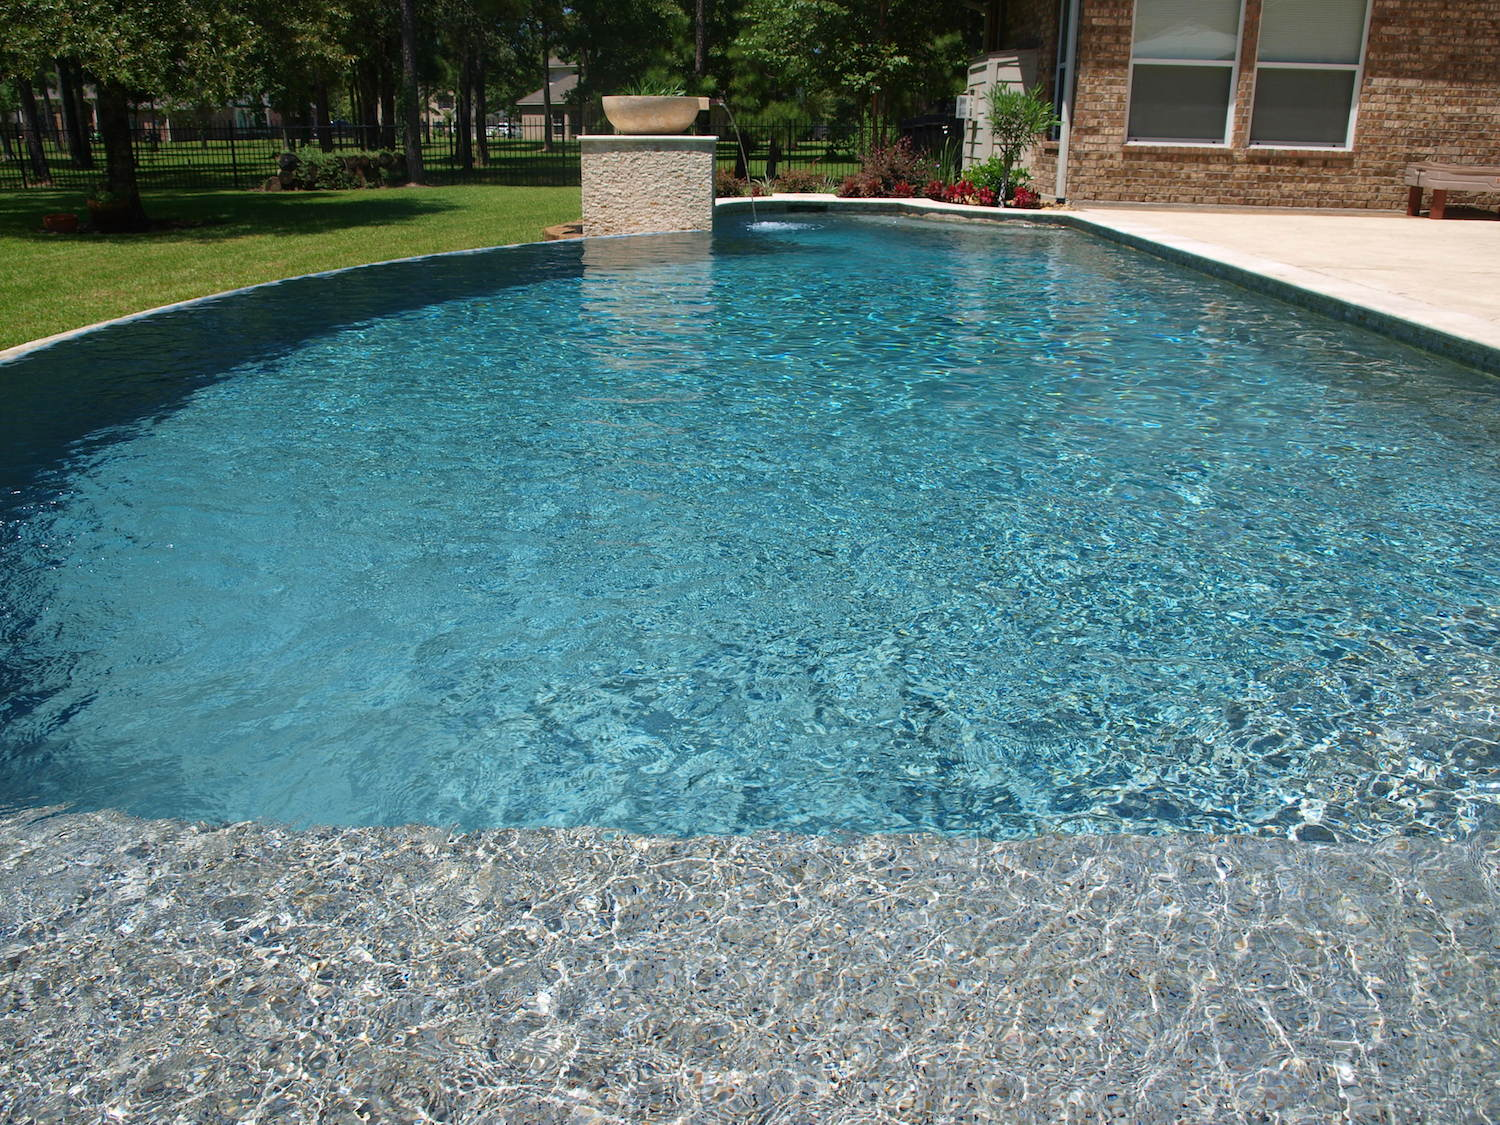 satin-matrix-northshore-caribbean-pool-finish-10